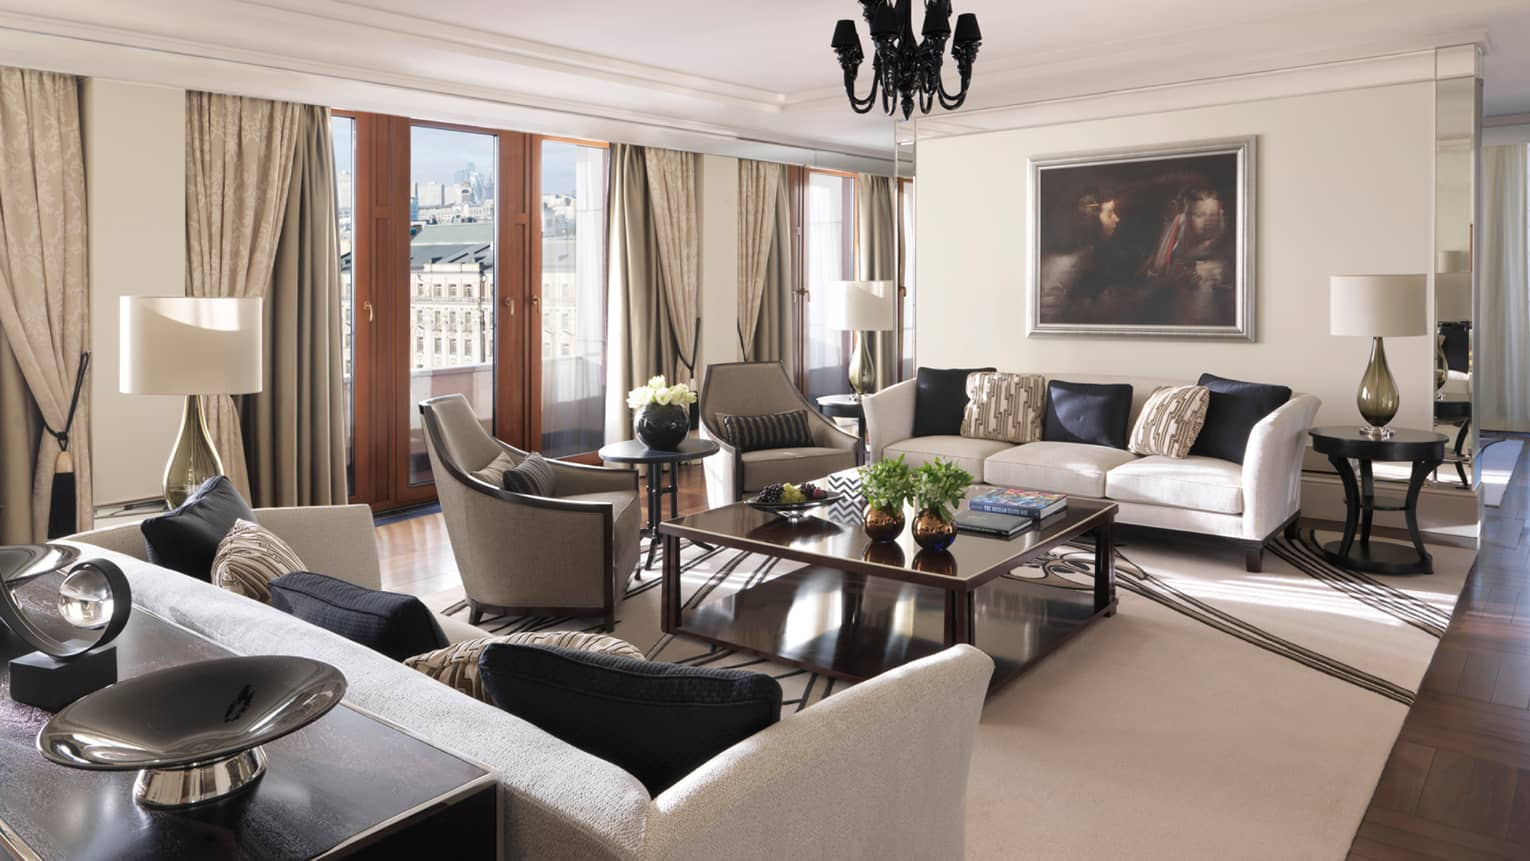 Sunny Minin Presidential Suite living area with white sofas, grey chairs, brass coffee table and vase